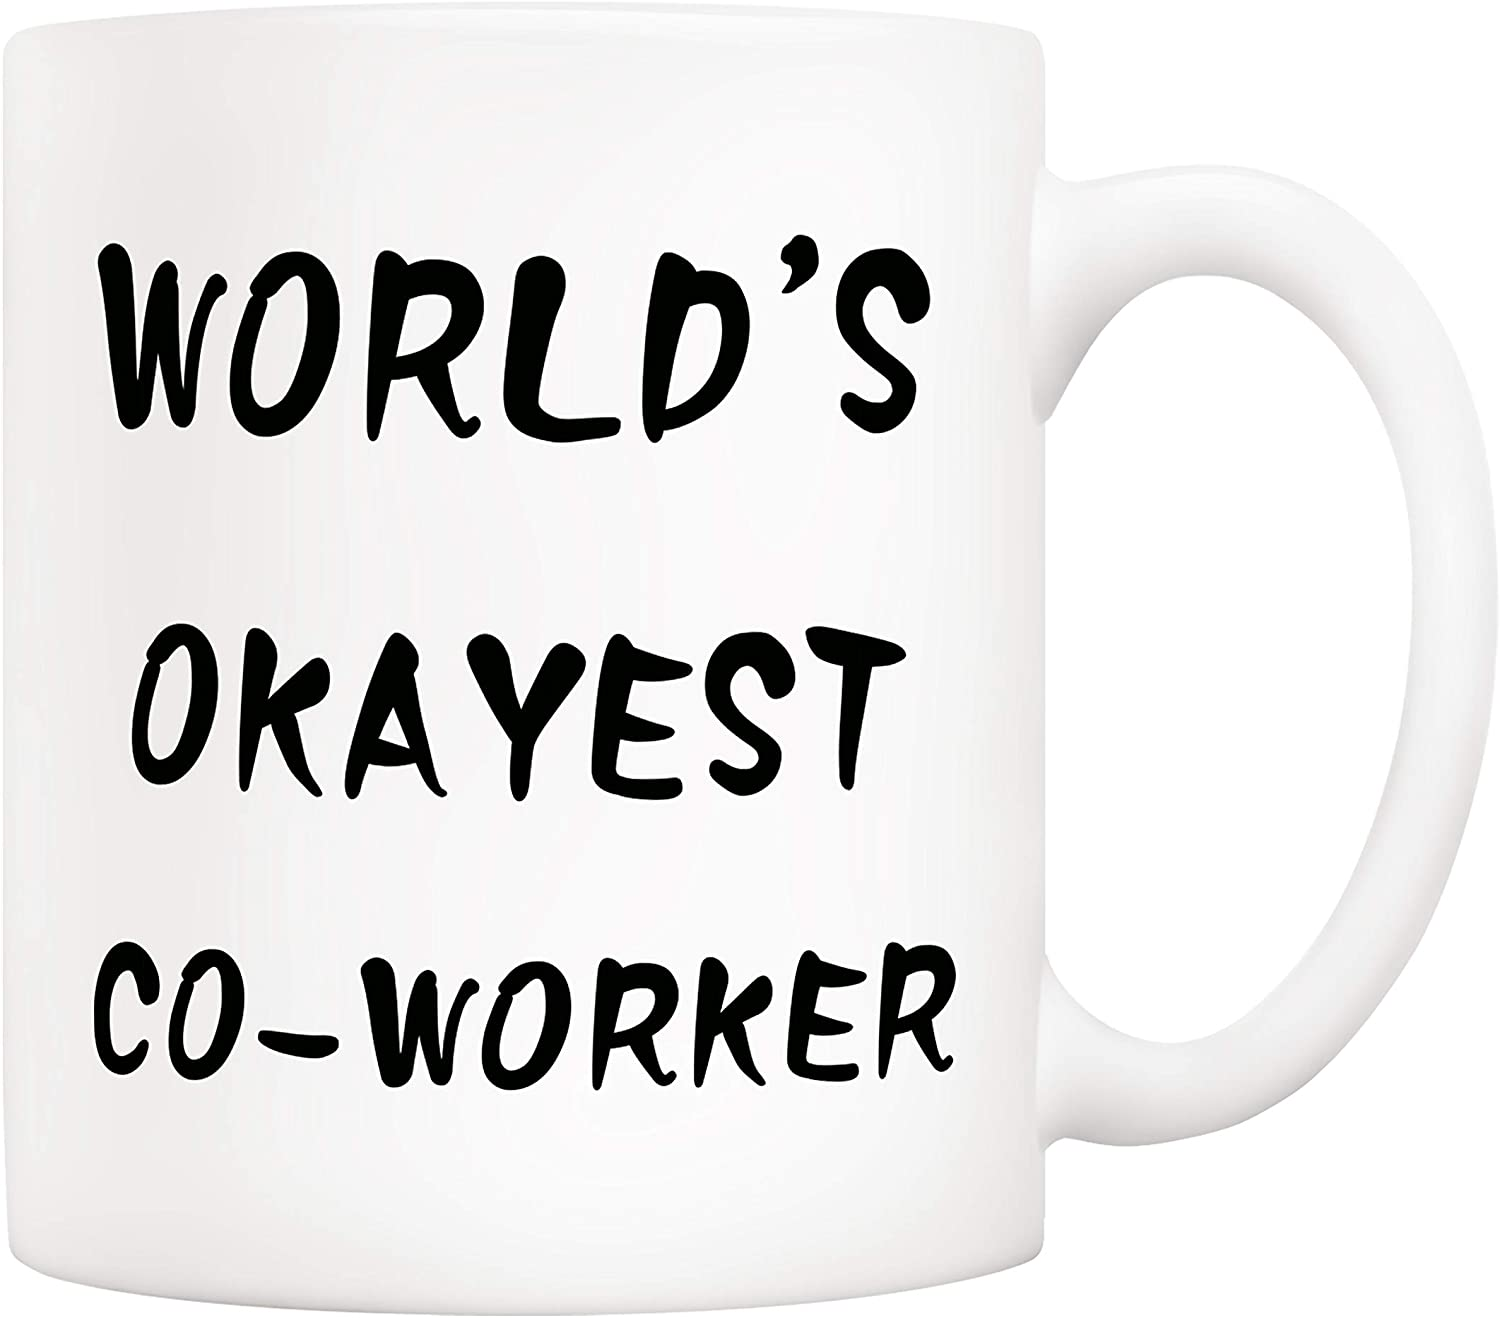 5Aup Christmas Gifts Funny Coworker Coffee Mug, World's Okayest Co-worker Novelty Ceramic Cups 11Oz, Unique Office Gifts for Coworker Friend Colleague